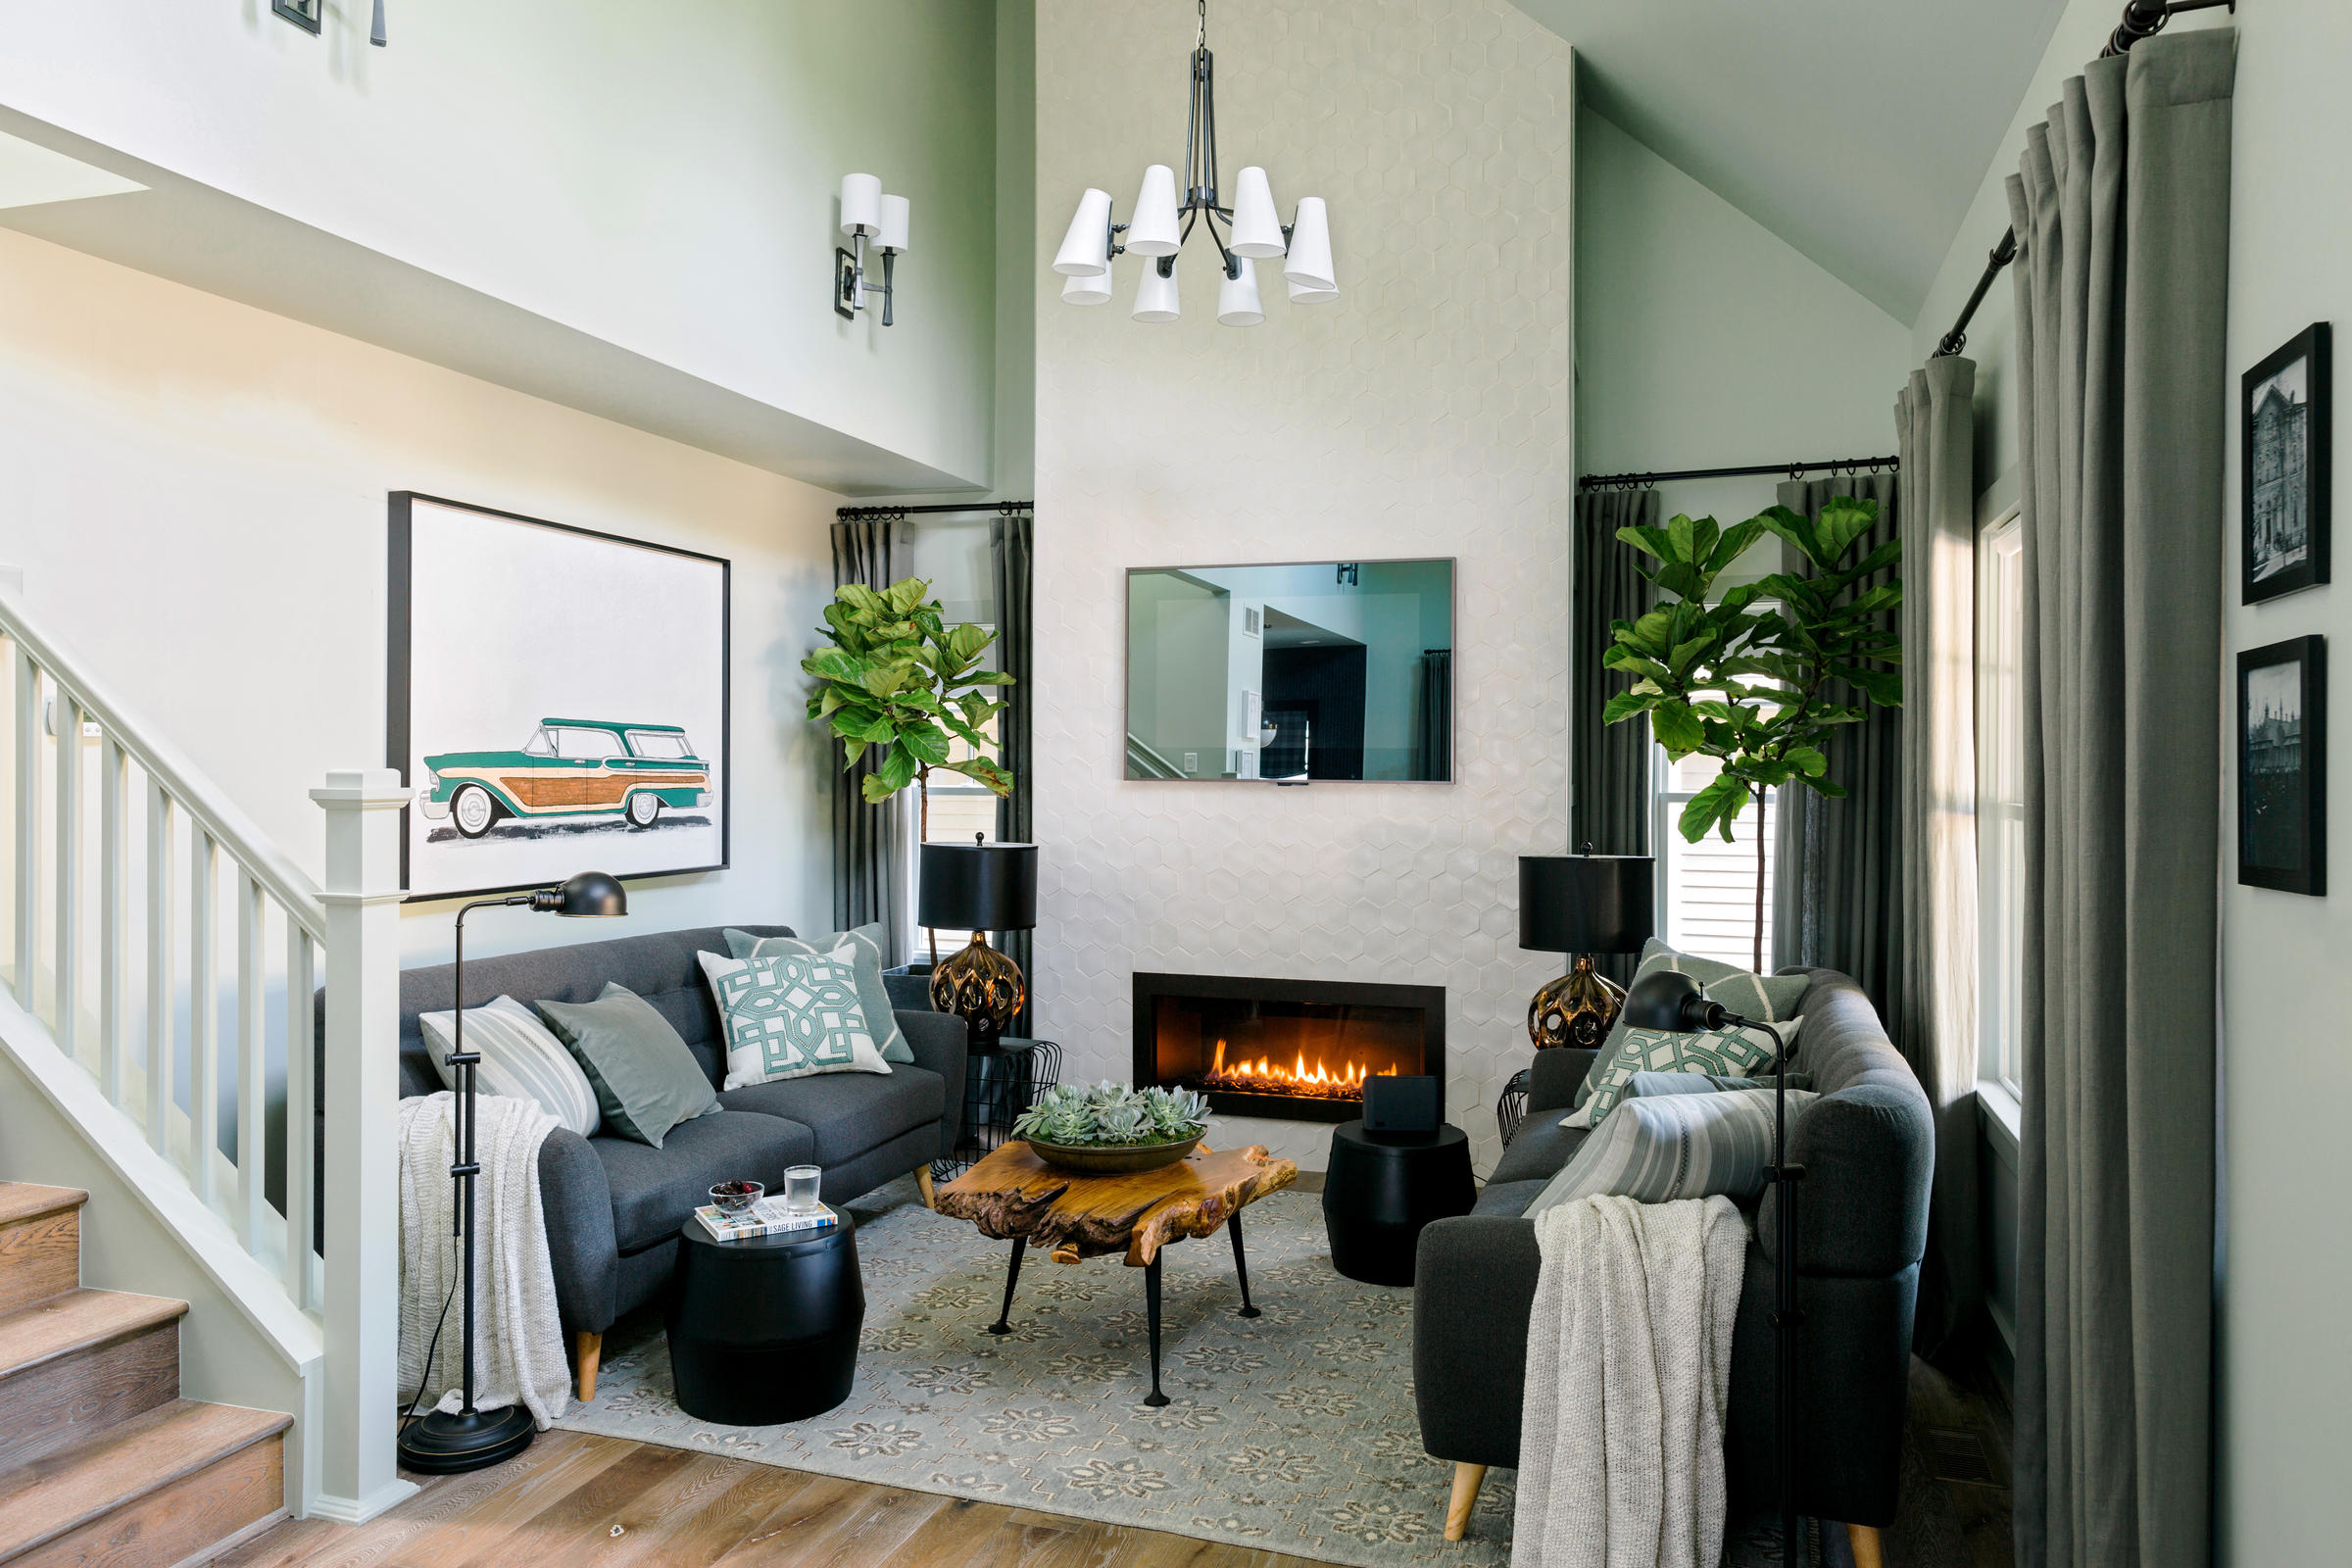 Ann Arbor Home Is The Grand Prize In Hgtv 39 S Urban Oasis Sweepstakes Wemu